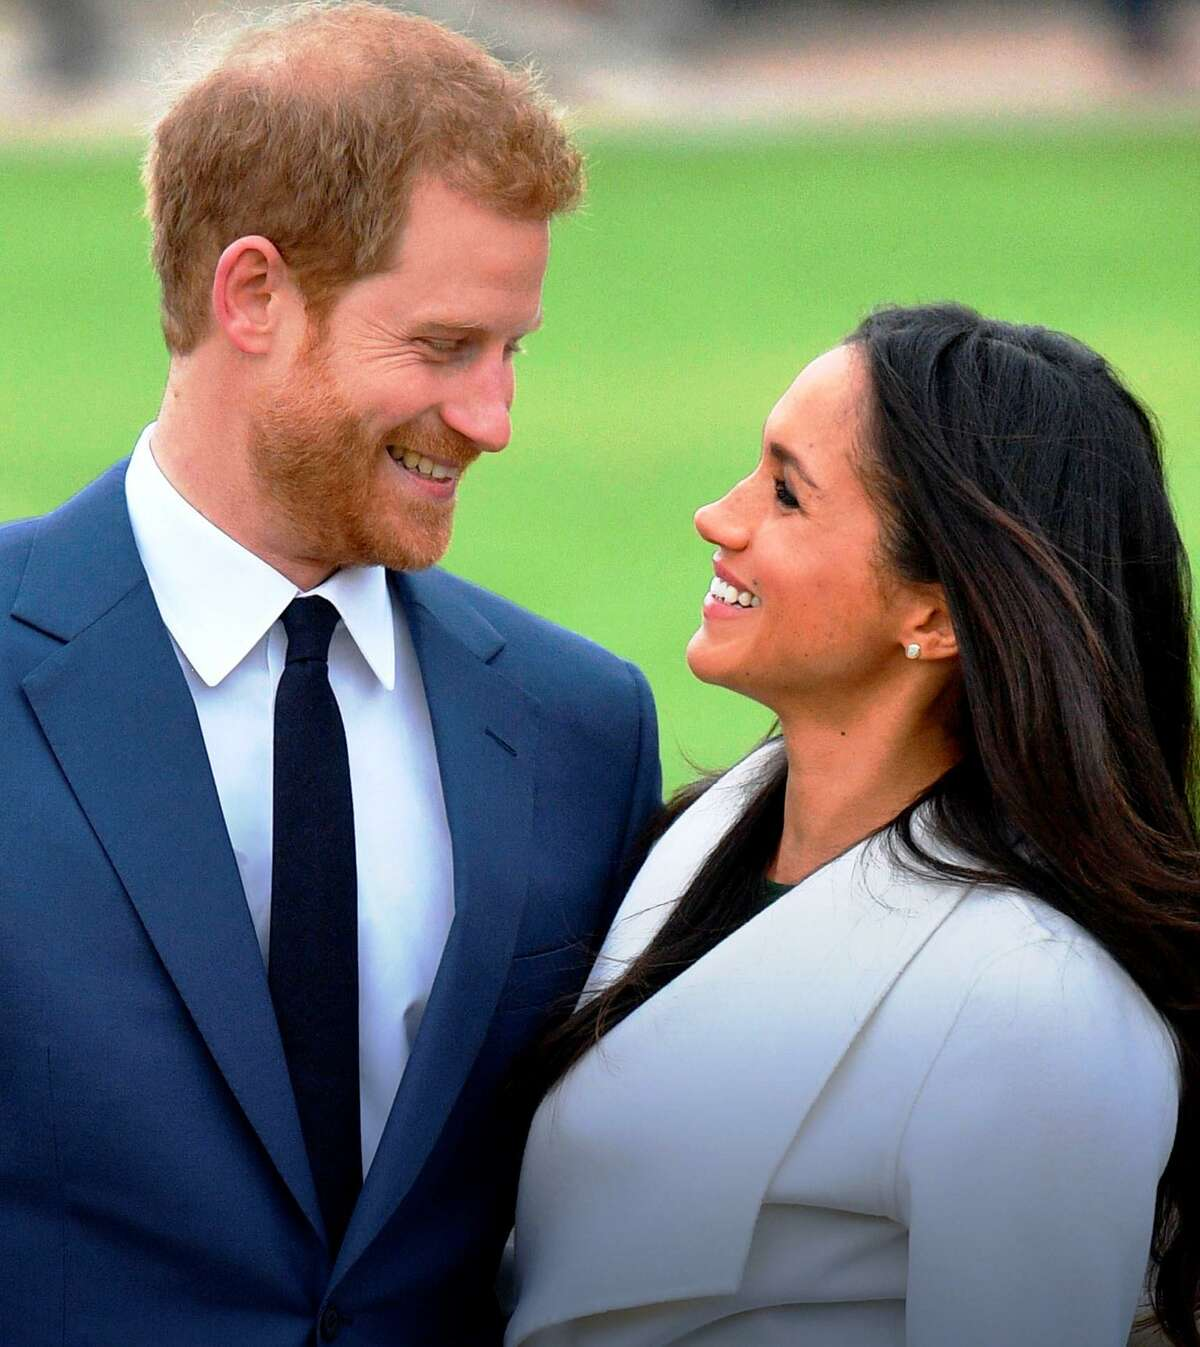 You'll be hard-pressed to find a network not covering the Prince Harry-Meghan Markle royal wedding Saturday.